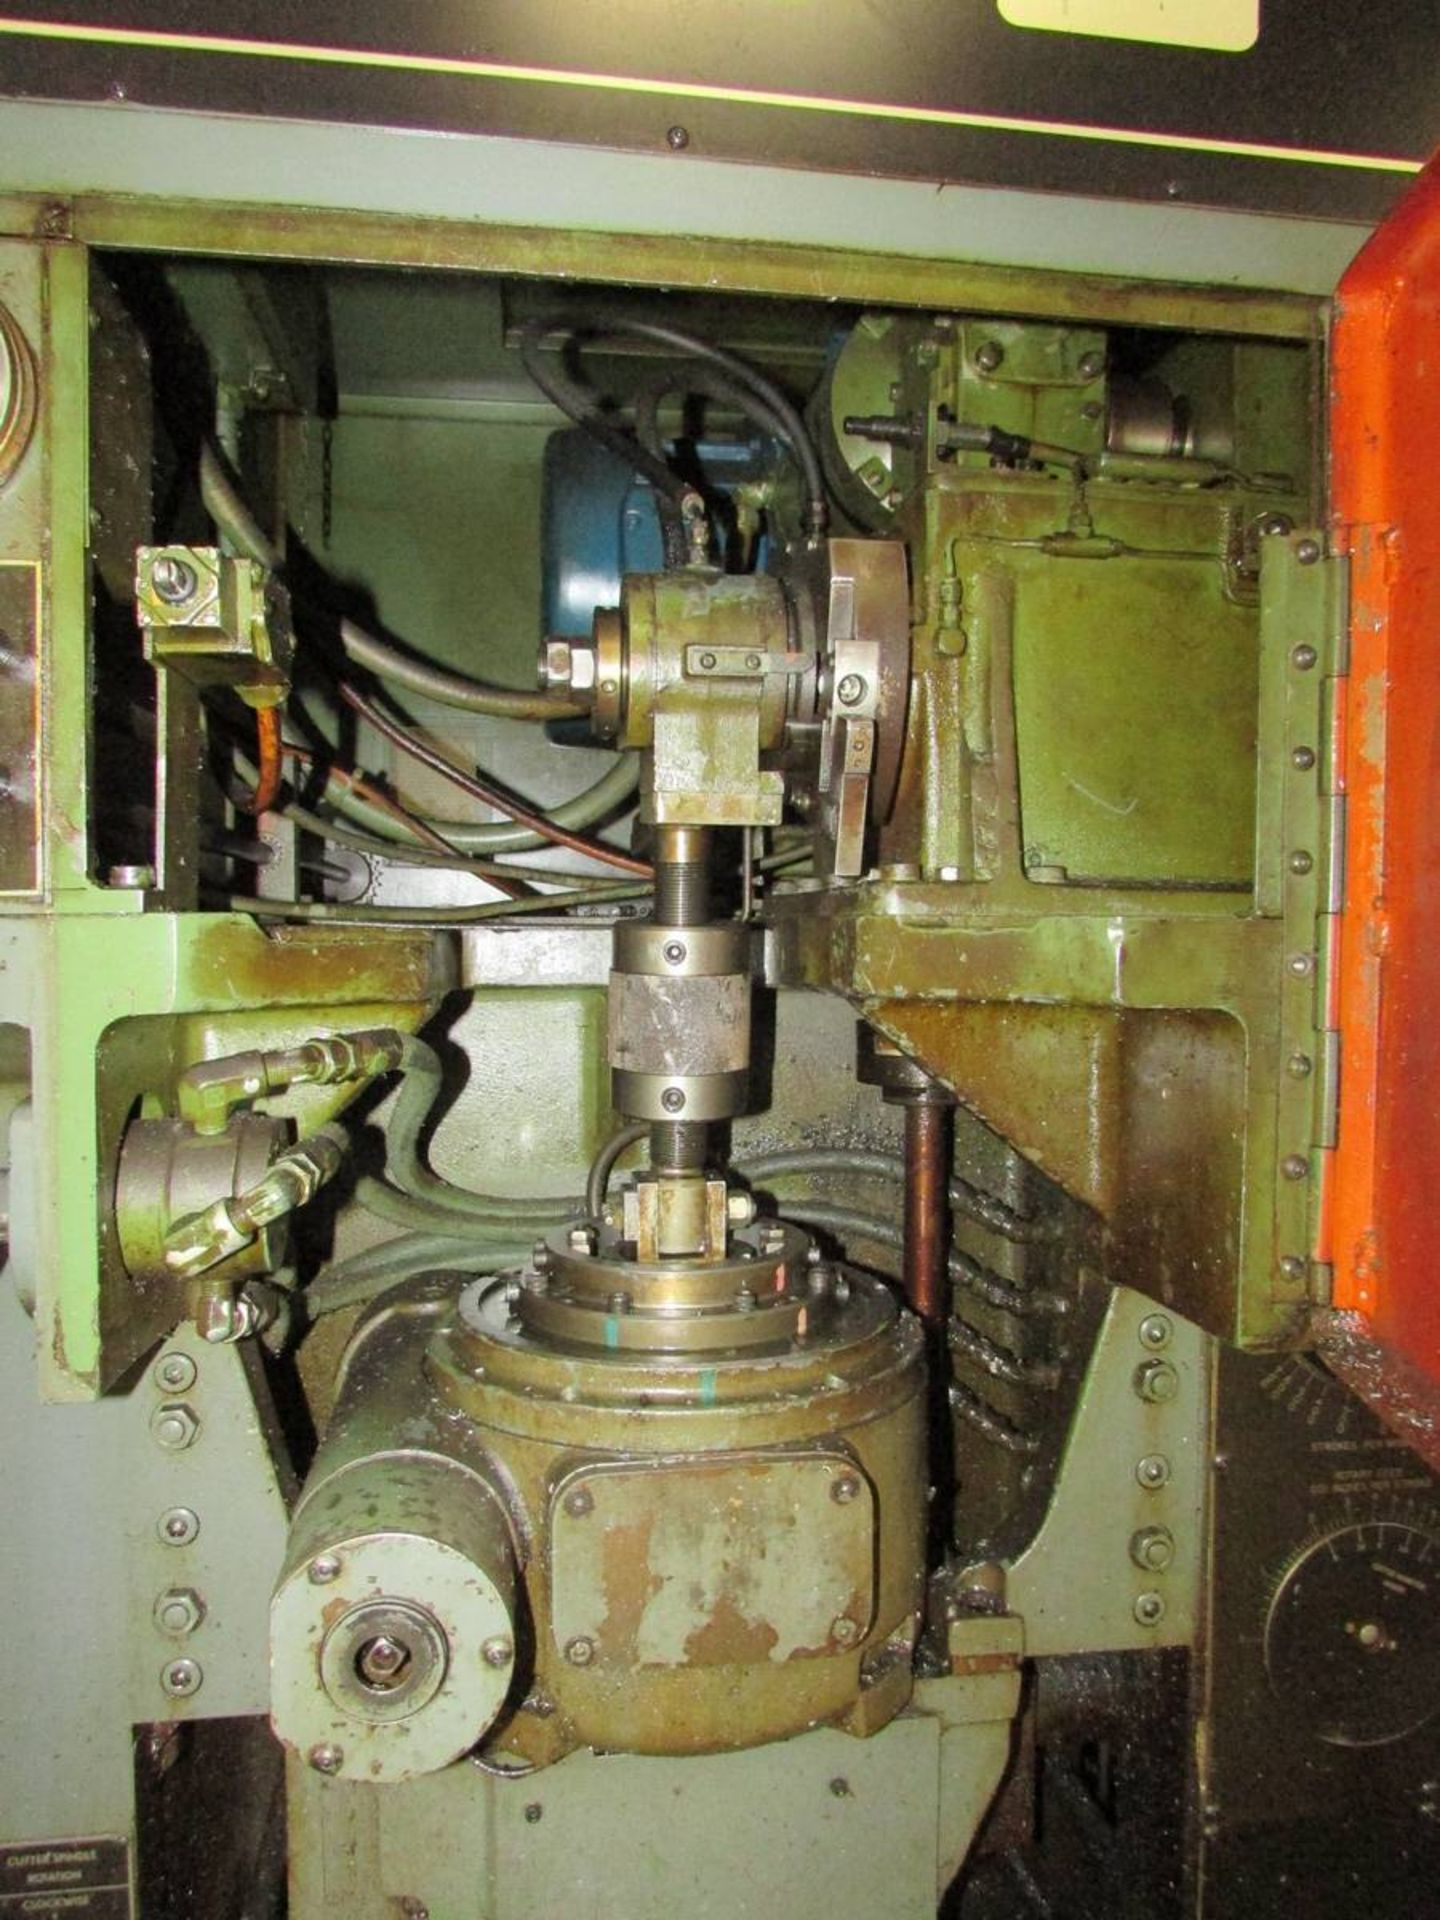 Barber Colman 18-04 Vertical Gear Shaping Machine - Image 6 of 19